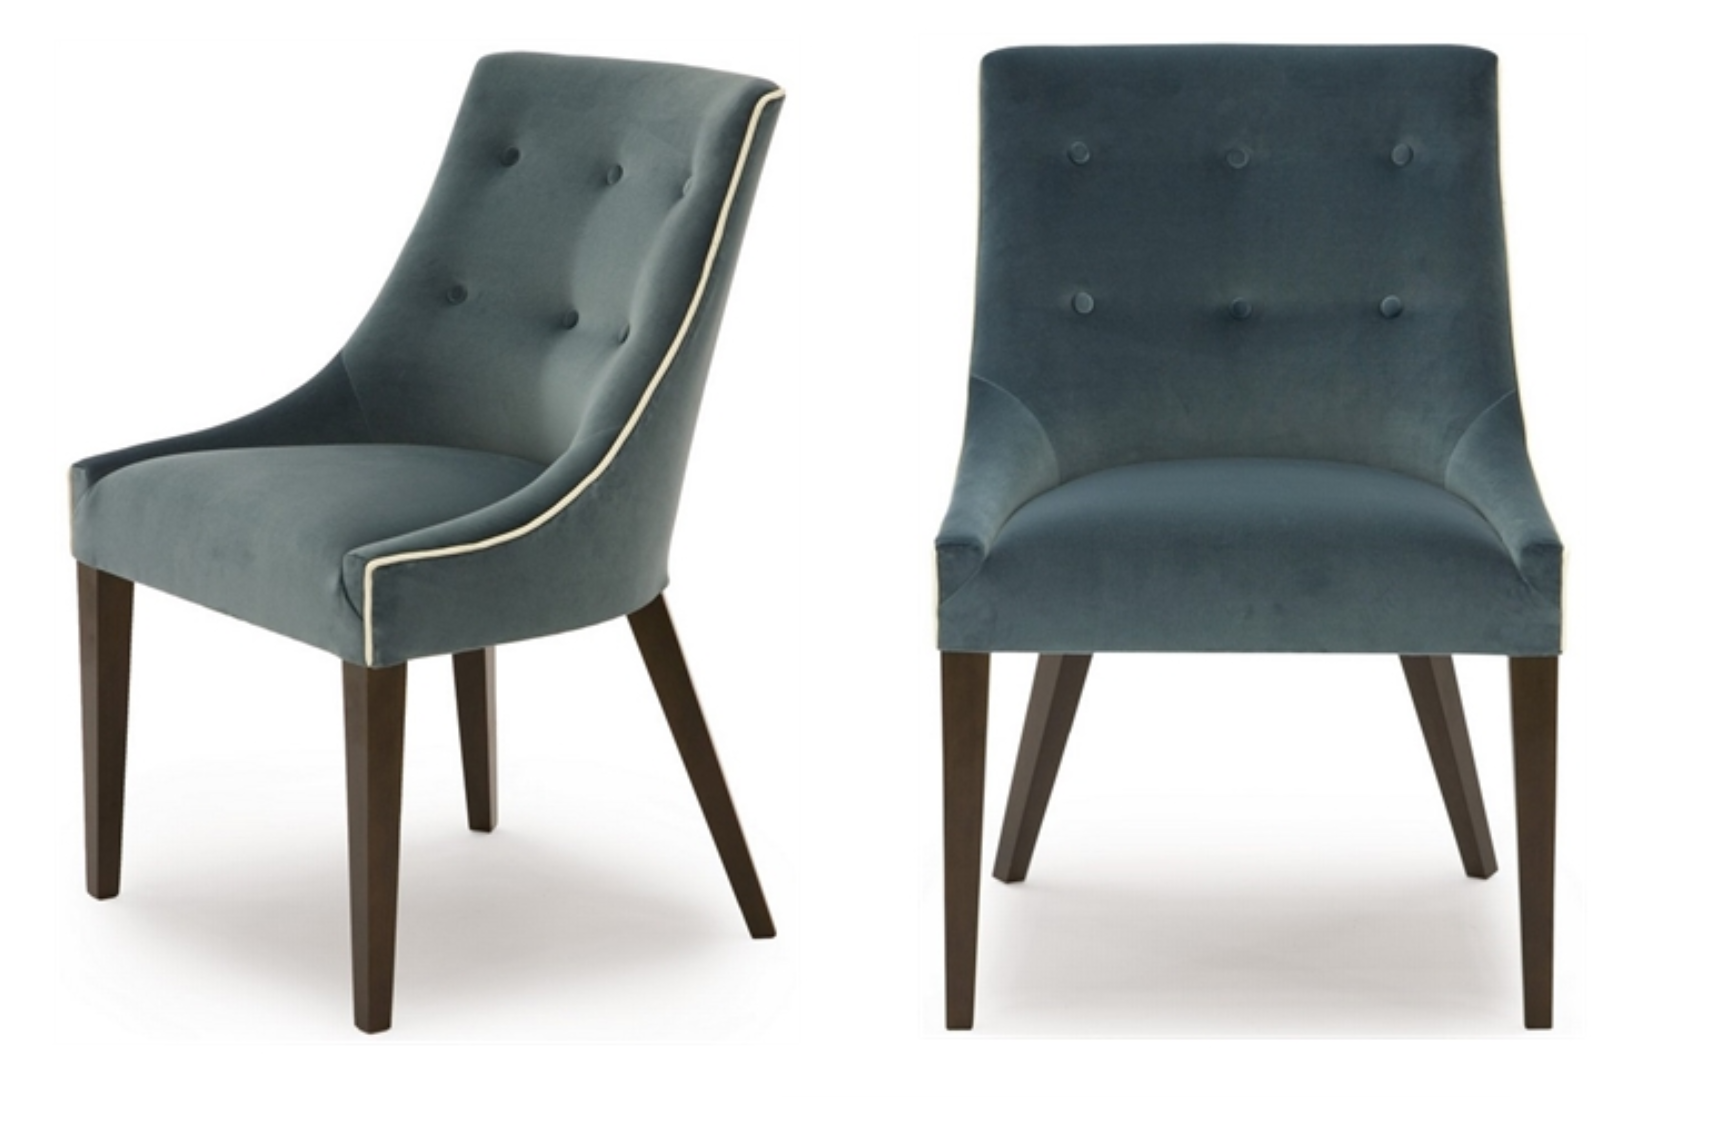 Sb Ka Elliot   Dining Chairs   Bespoke: The Sofa U0026 Chair Company   We  Manufacture Some Of The Most Beautiful Upholstered Furniture In London.